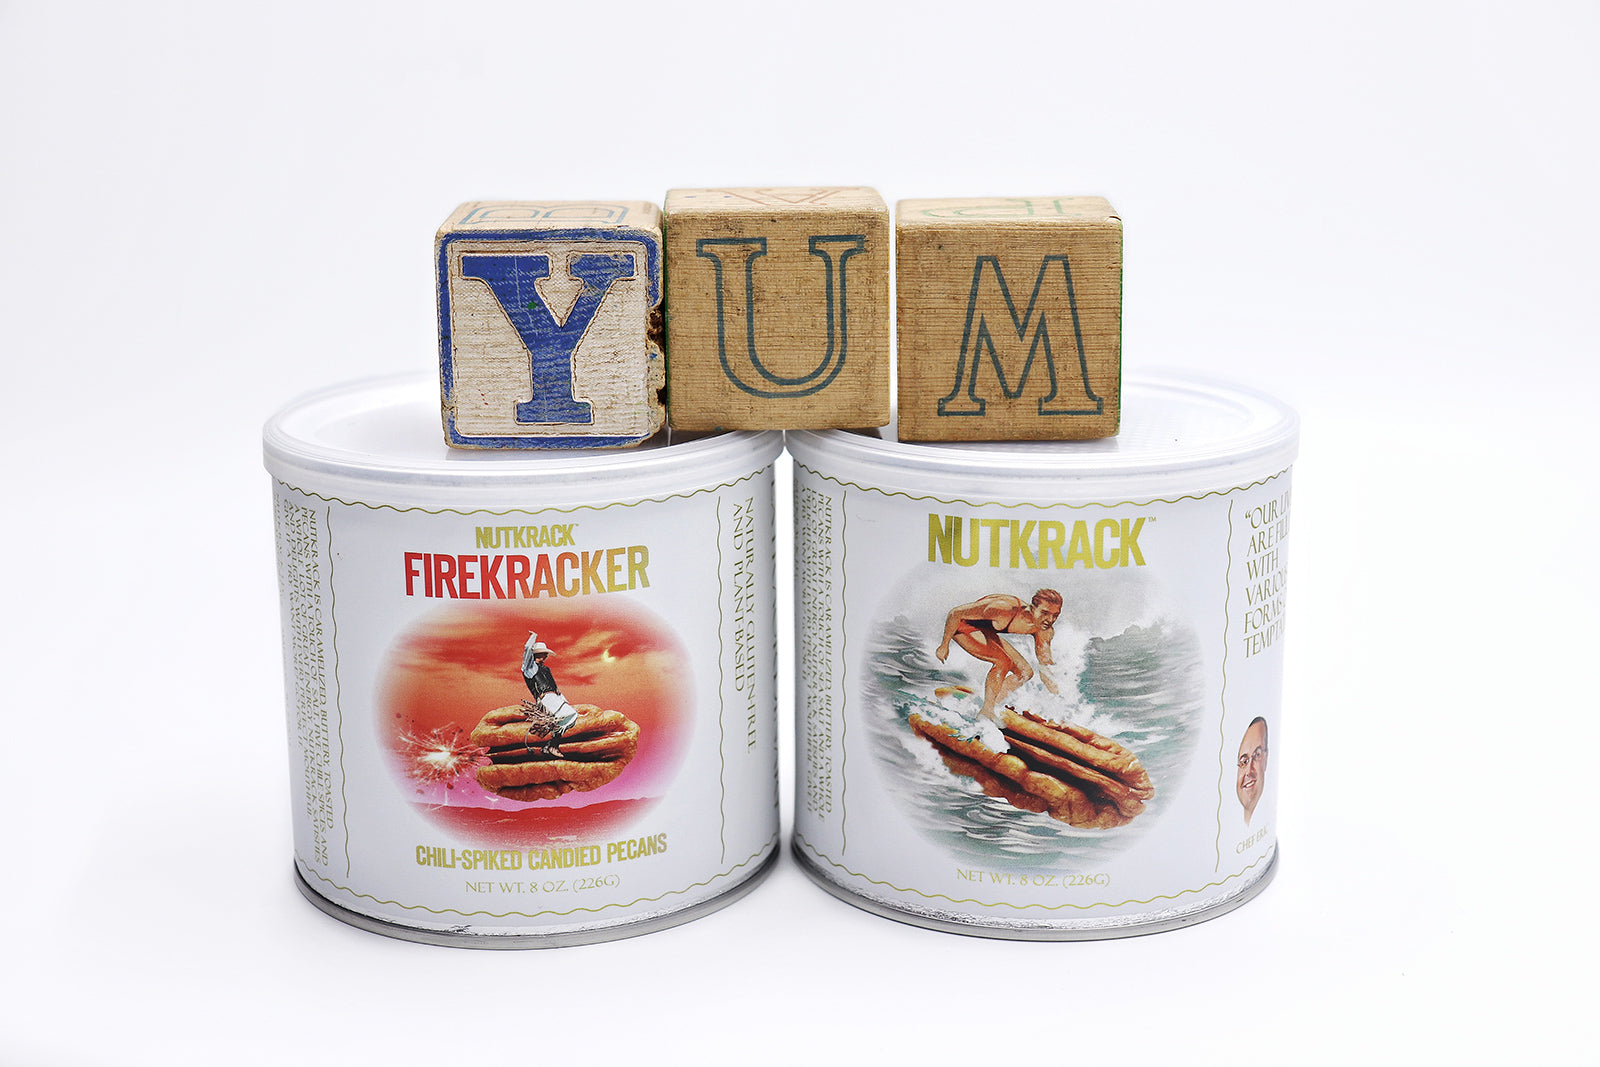 YUM blocks on cans of Firekracker and Nutkrack